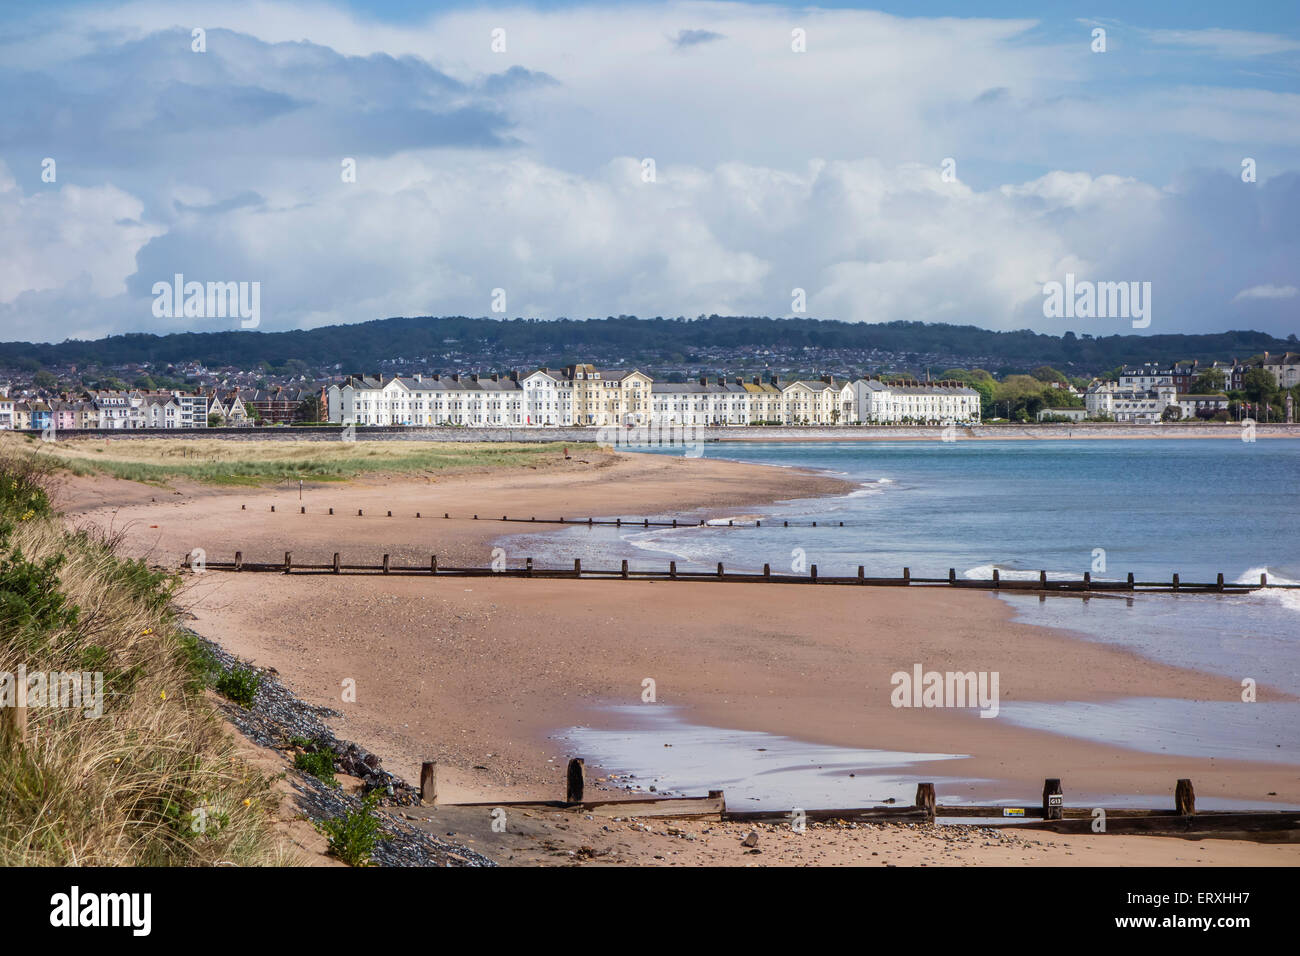 Dawlish Warren Beach with Exmouth in the background, Devon, England, UK - Stock Image